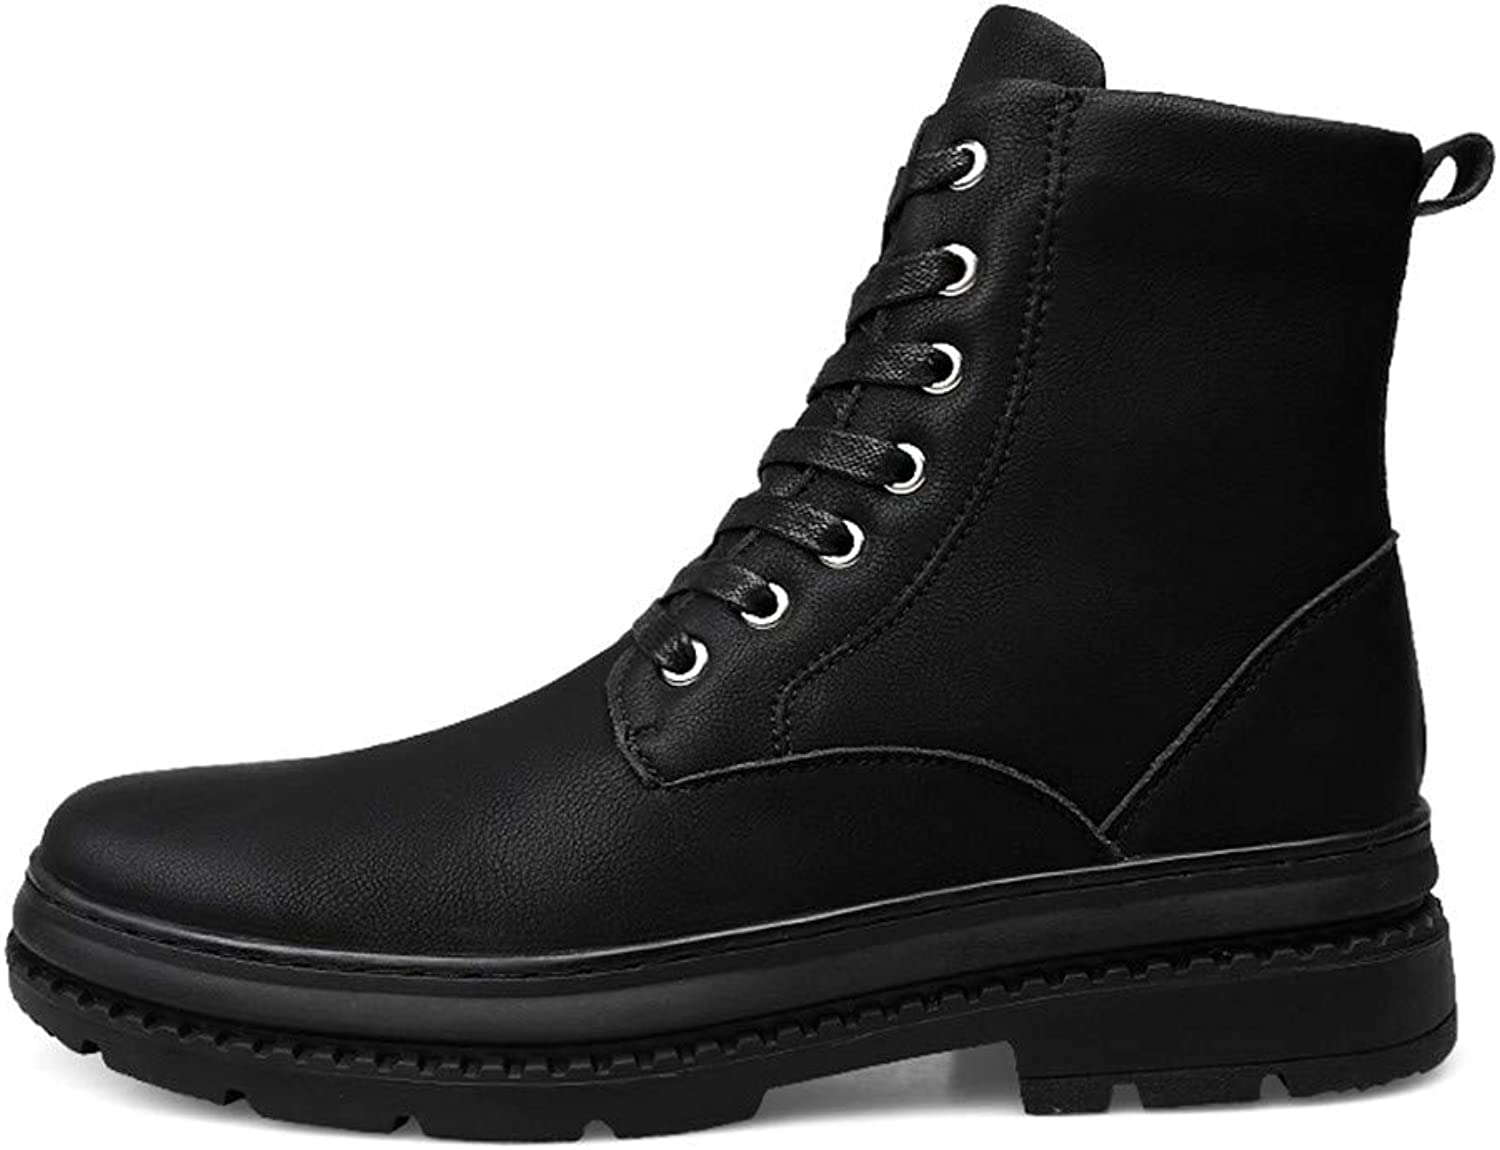 Men's Boots Casual HIGT-top sAnkle Soft Genuine Leather Round Top Lacing Martin Boots (Warm Velvet Optional)